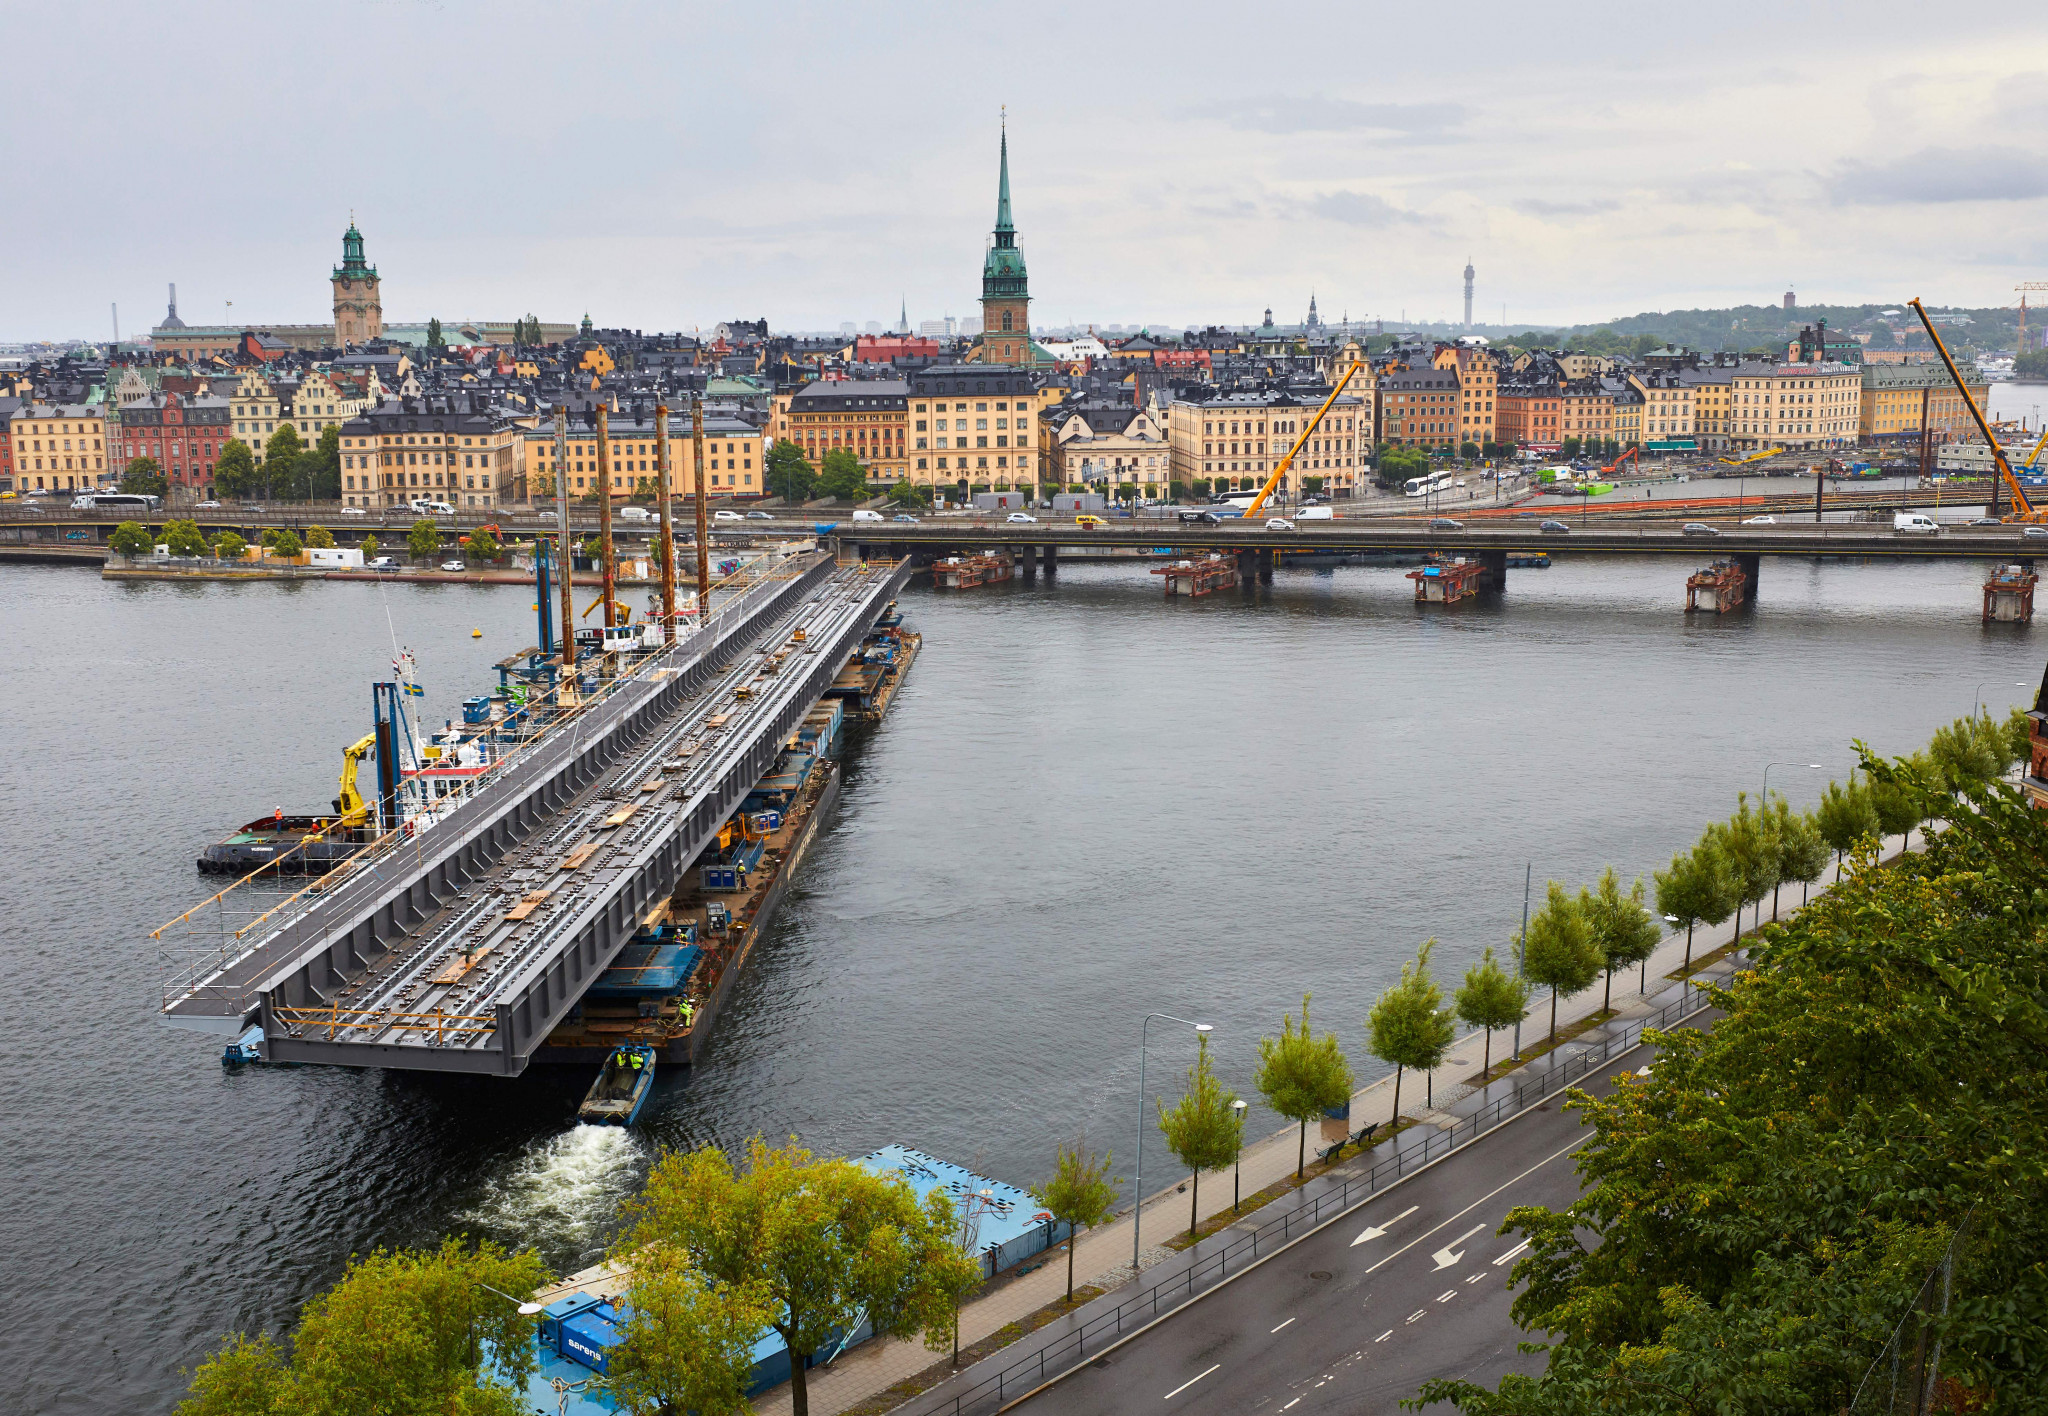 Stockholm is host the event in June 2021 ©Getty Images